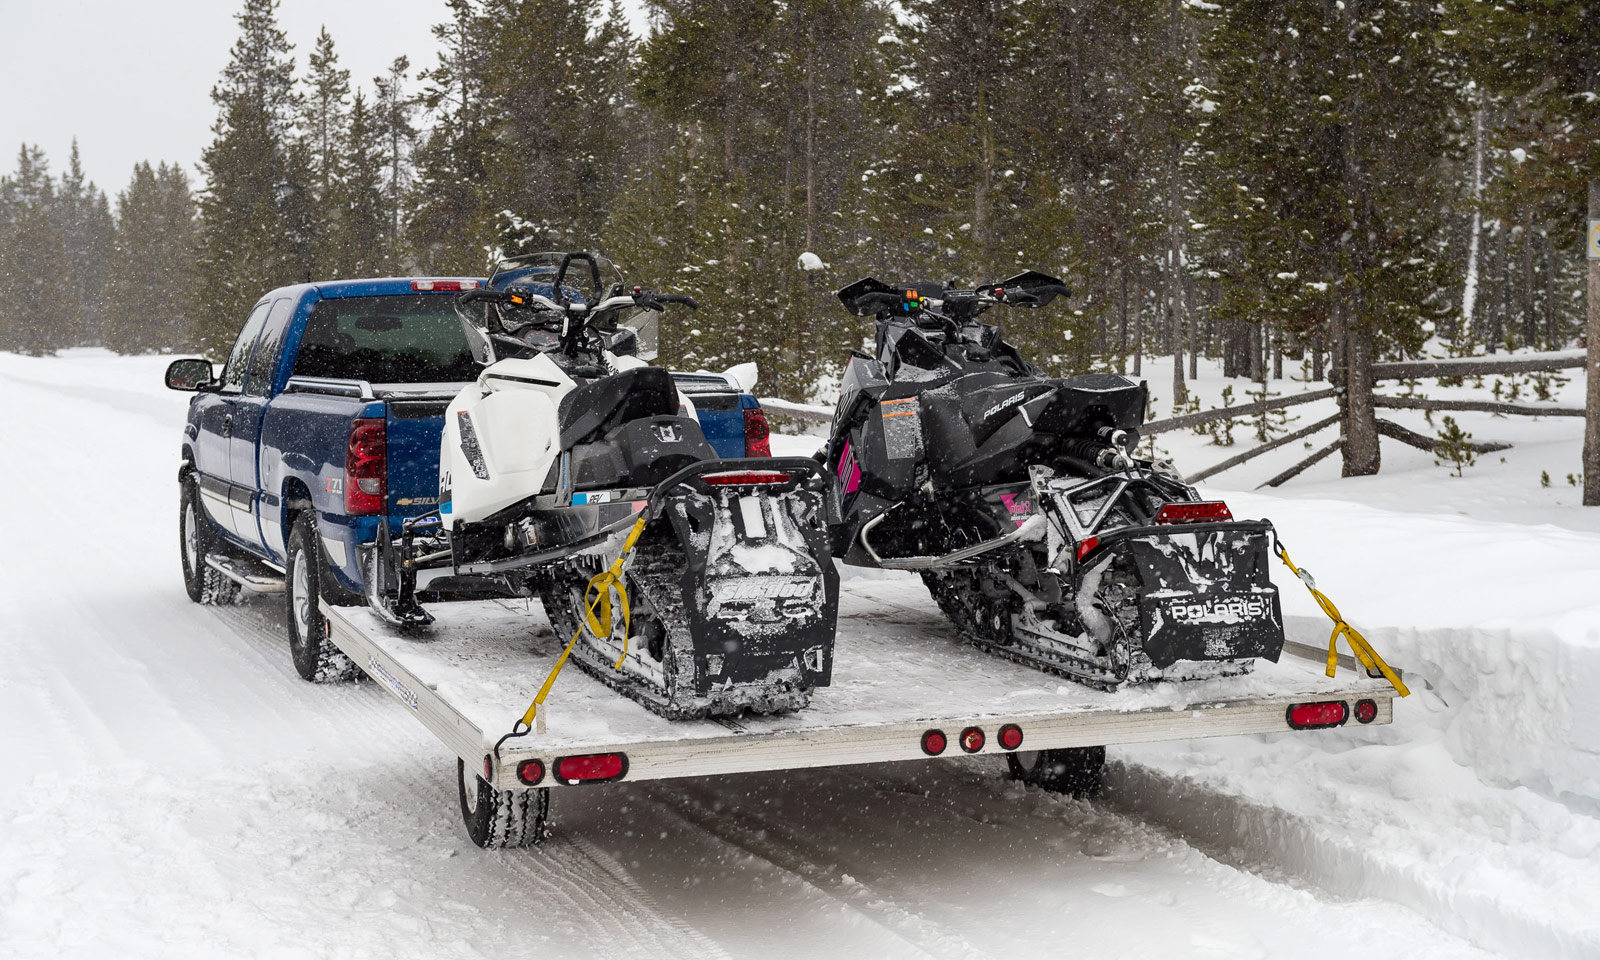 Pickup truck hauling two snowmobiles